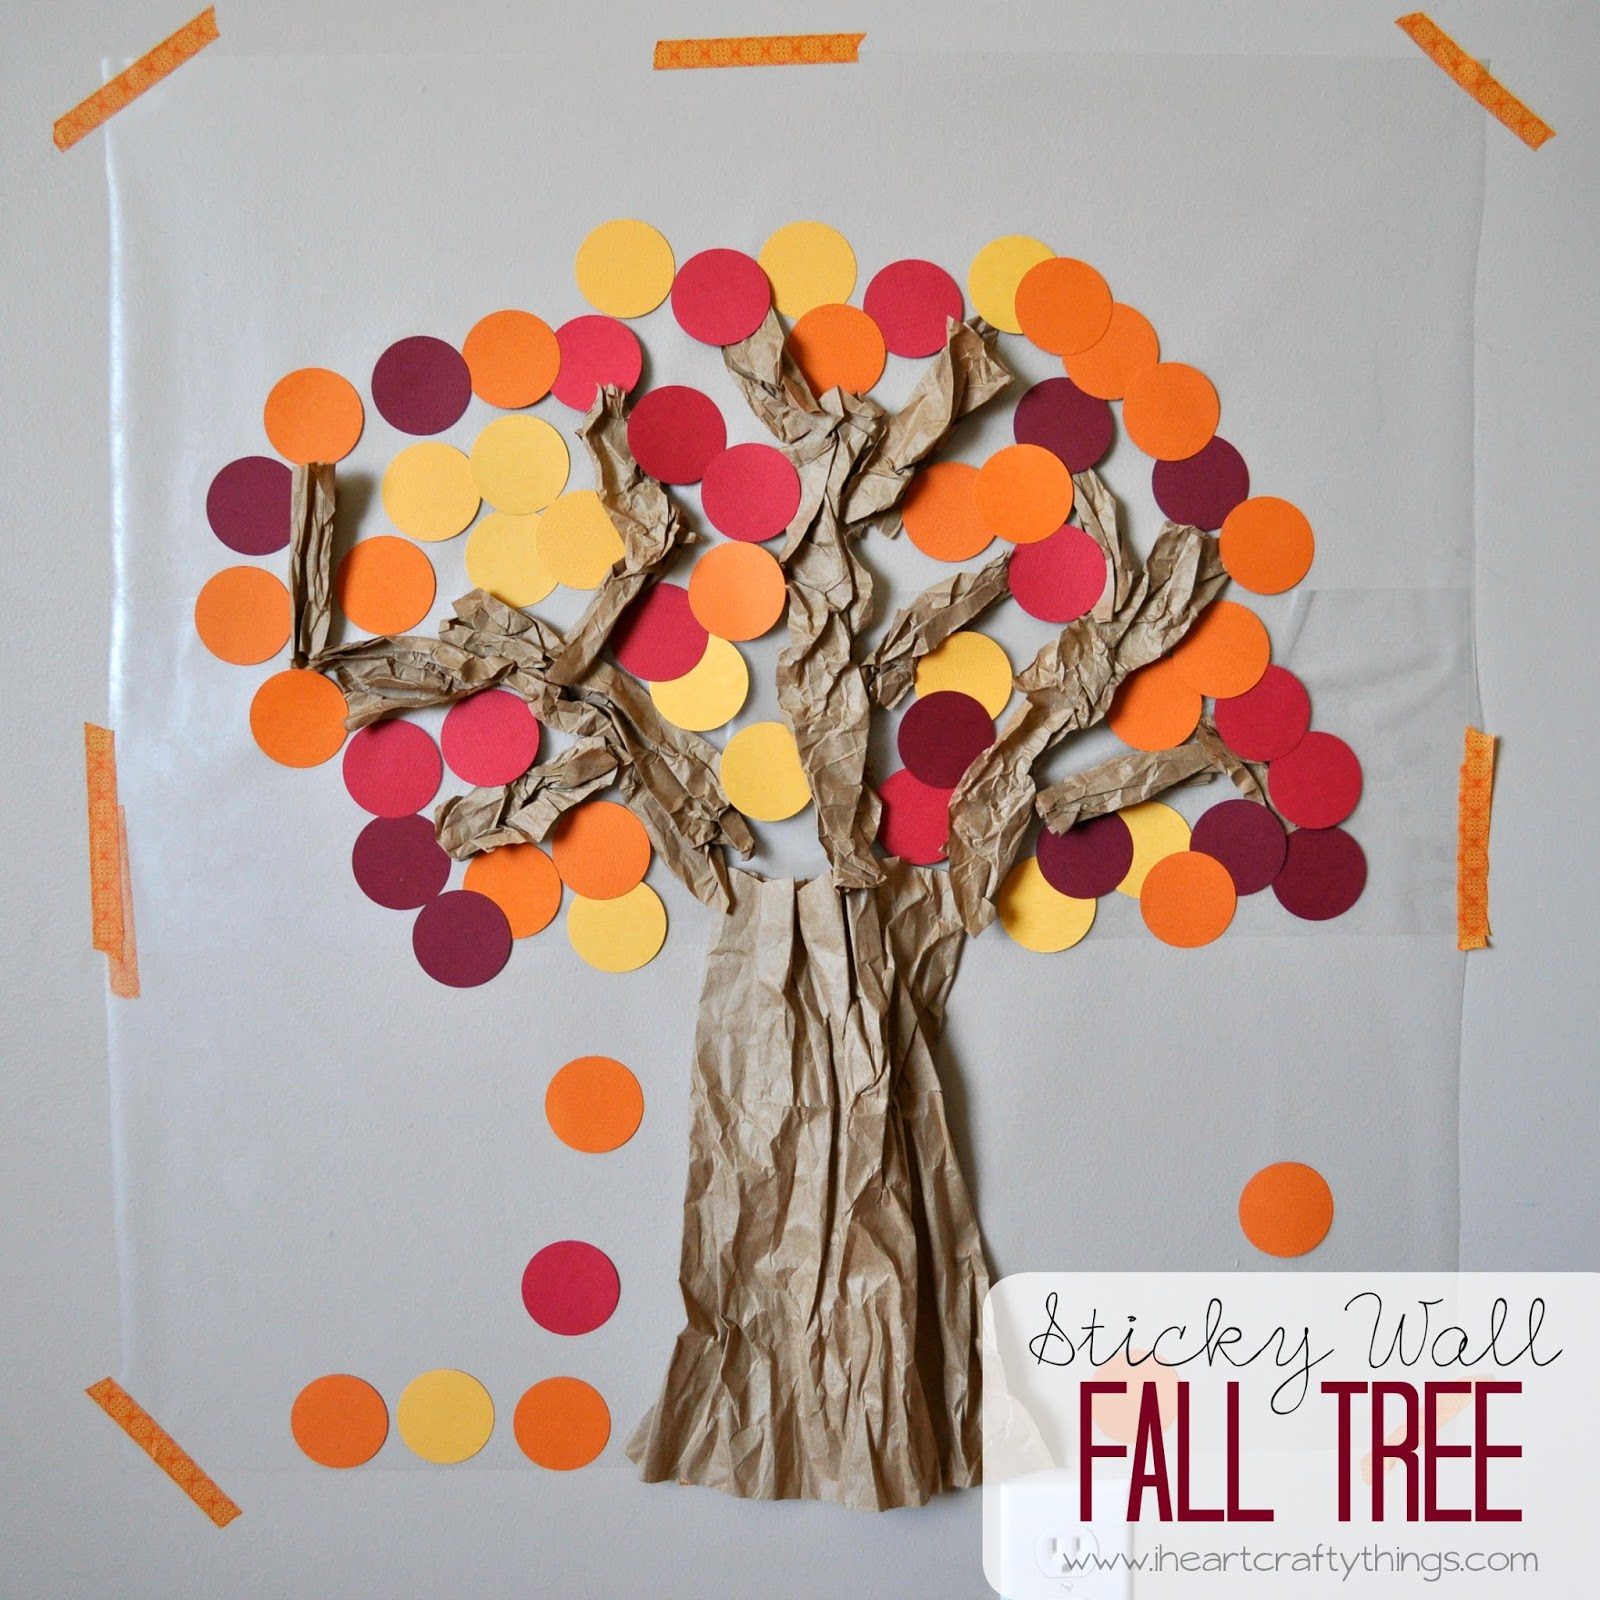 I Heart Crafty Things Contact Paper Sticky Wall Fall Tree